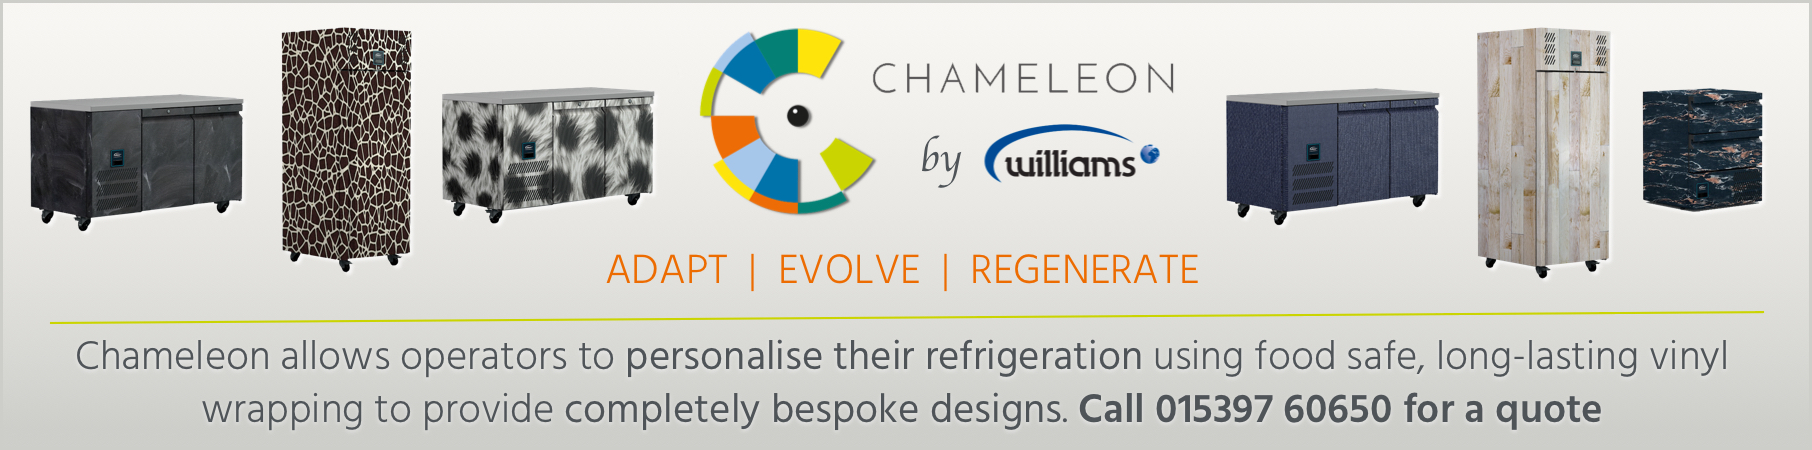 Williams Chameleon Refrigeration Wraps